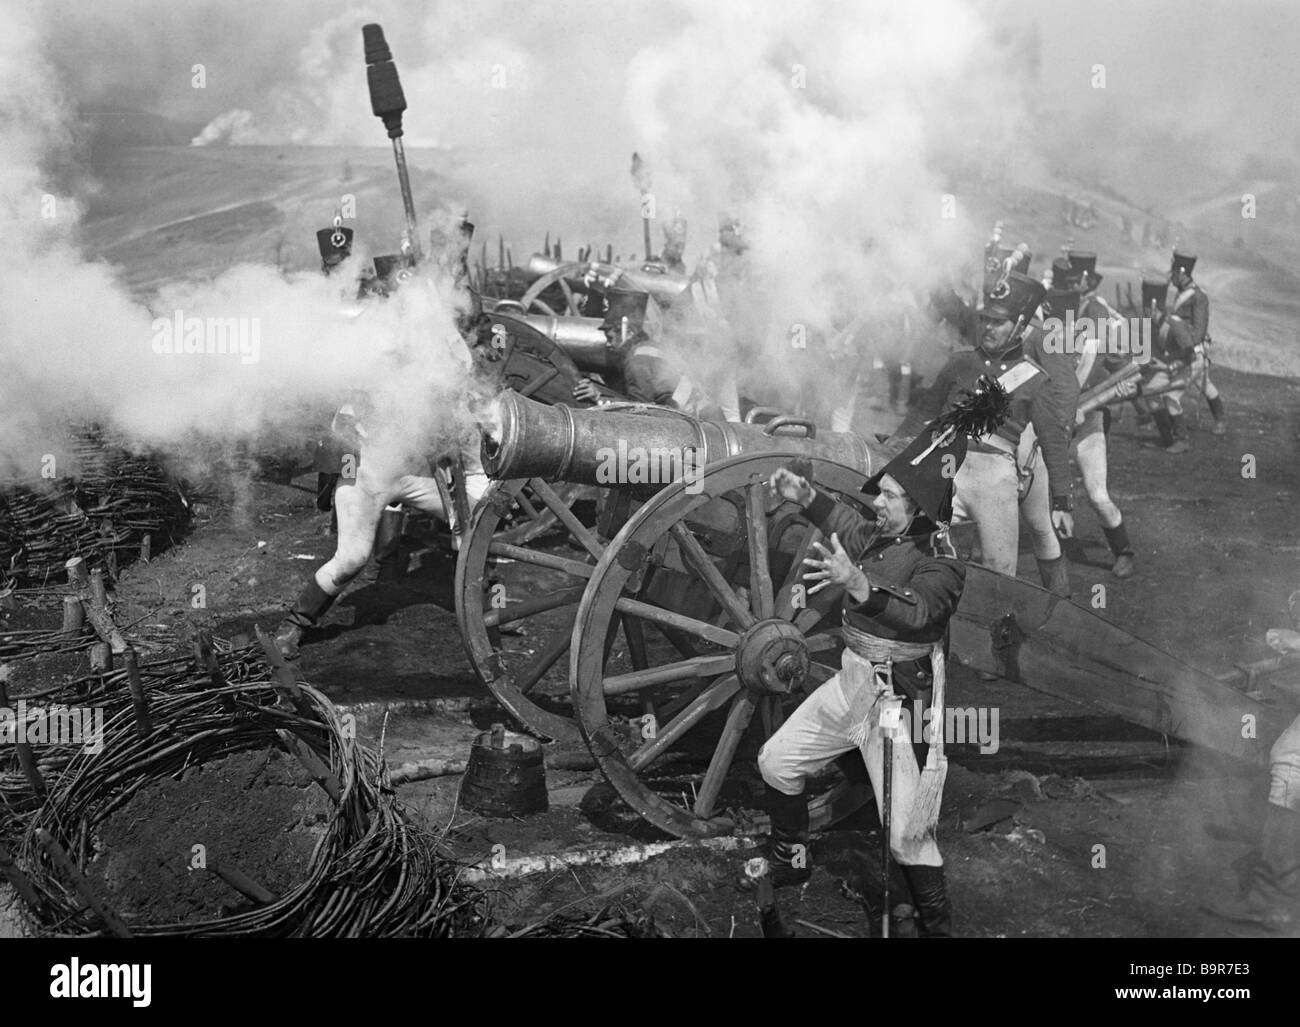 A battle scene from the film War and Peace - Stock Image